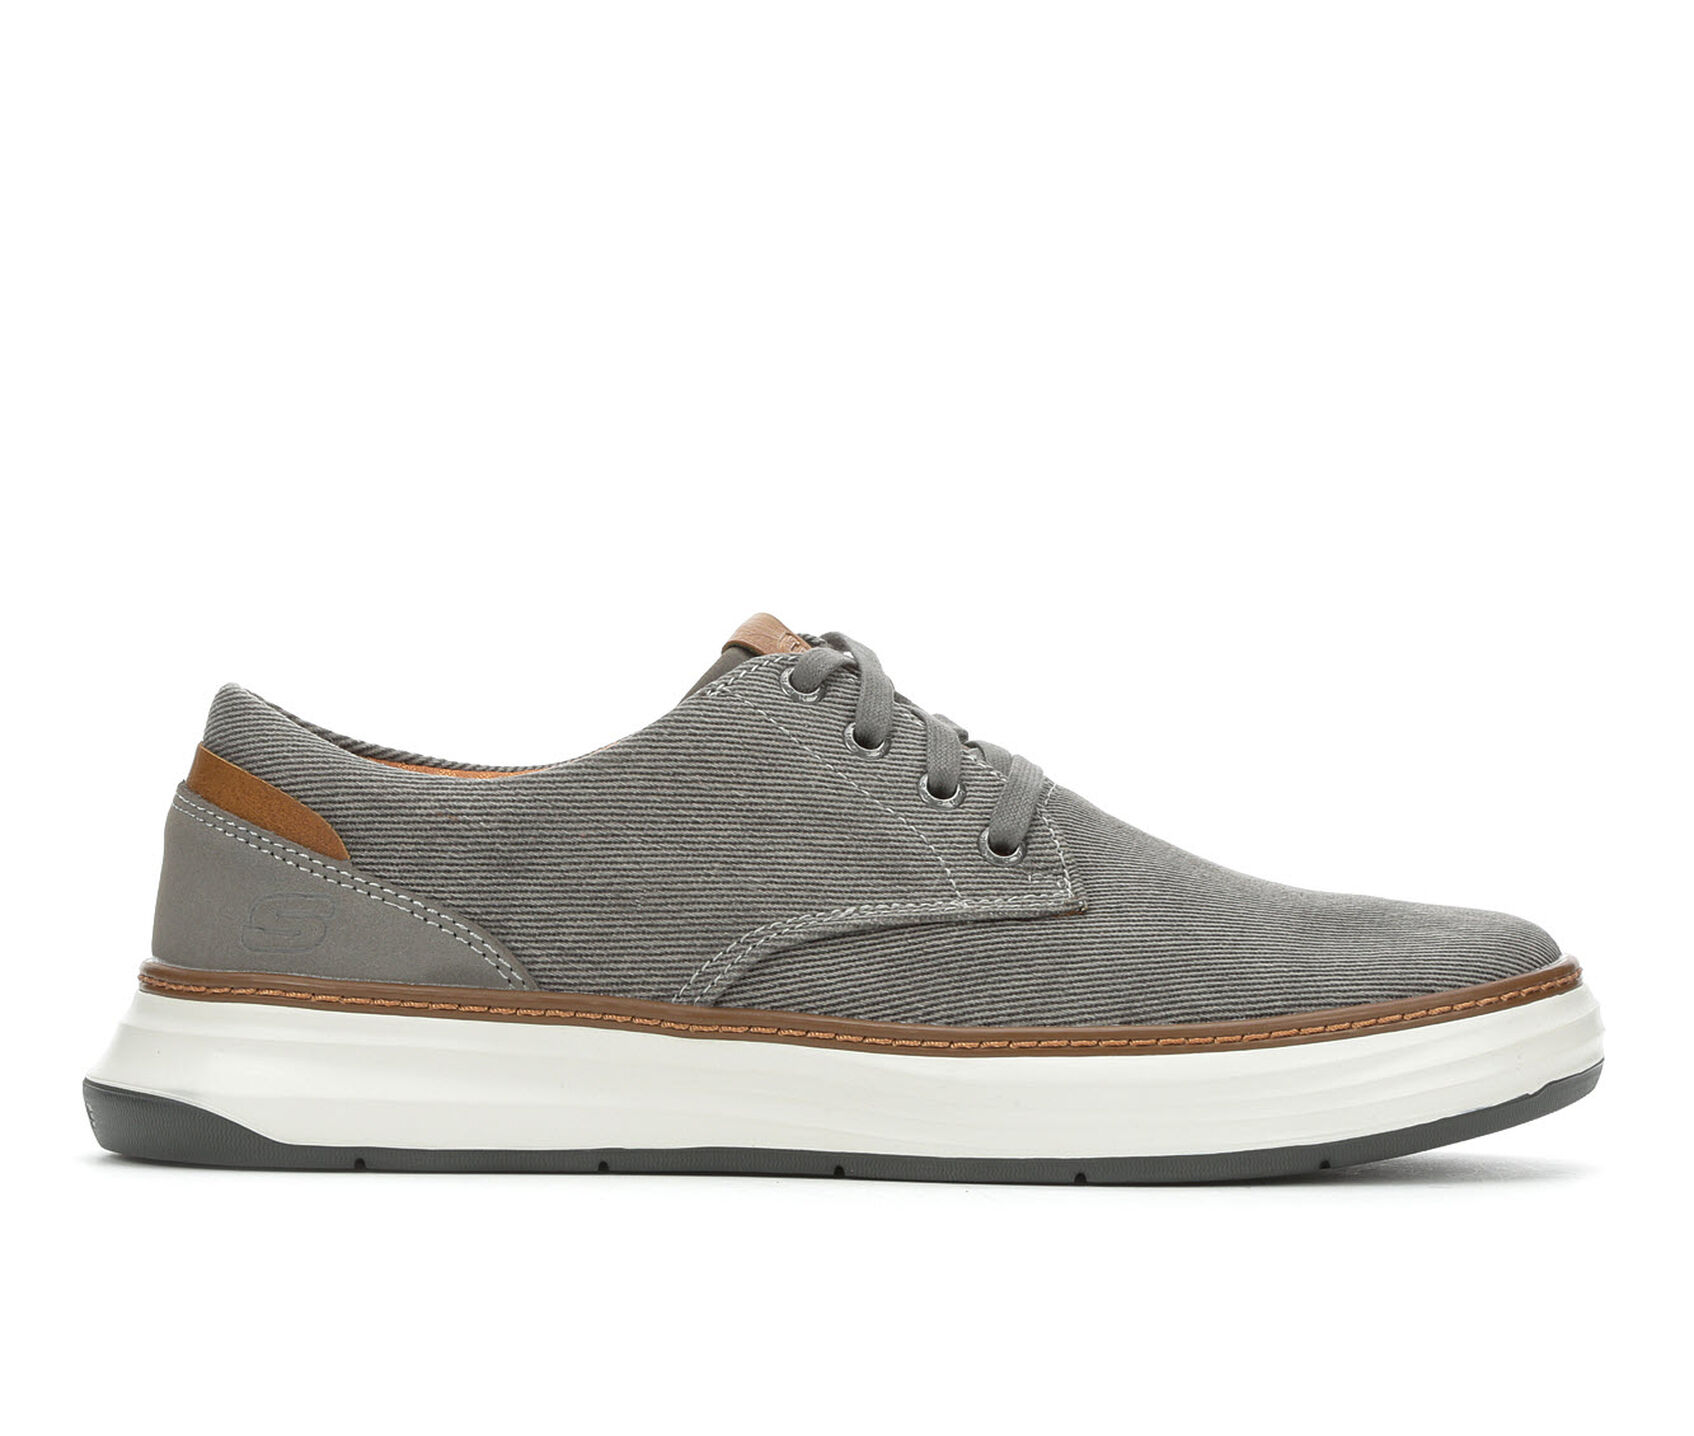 skechers shoes casual